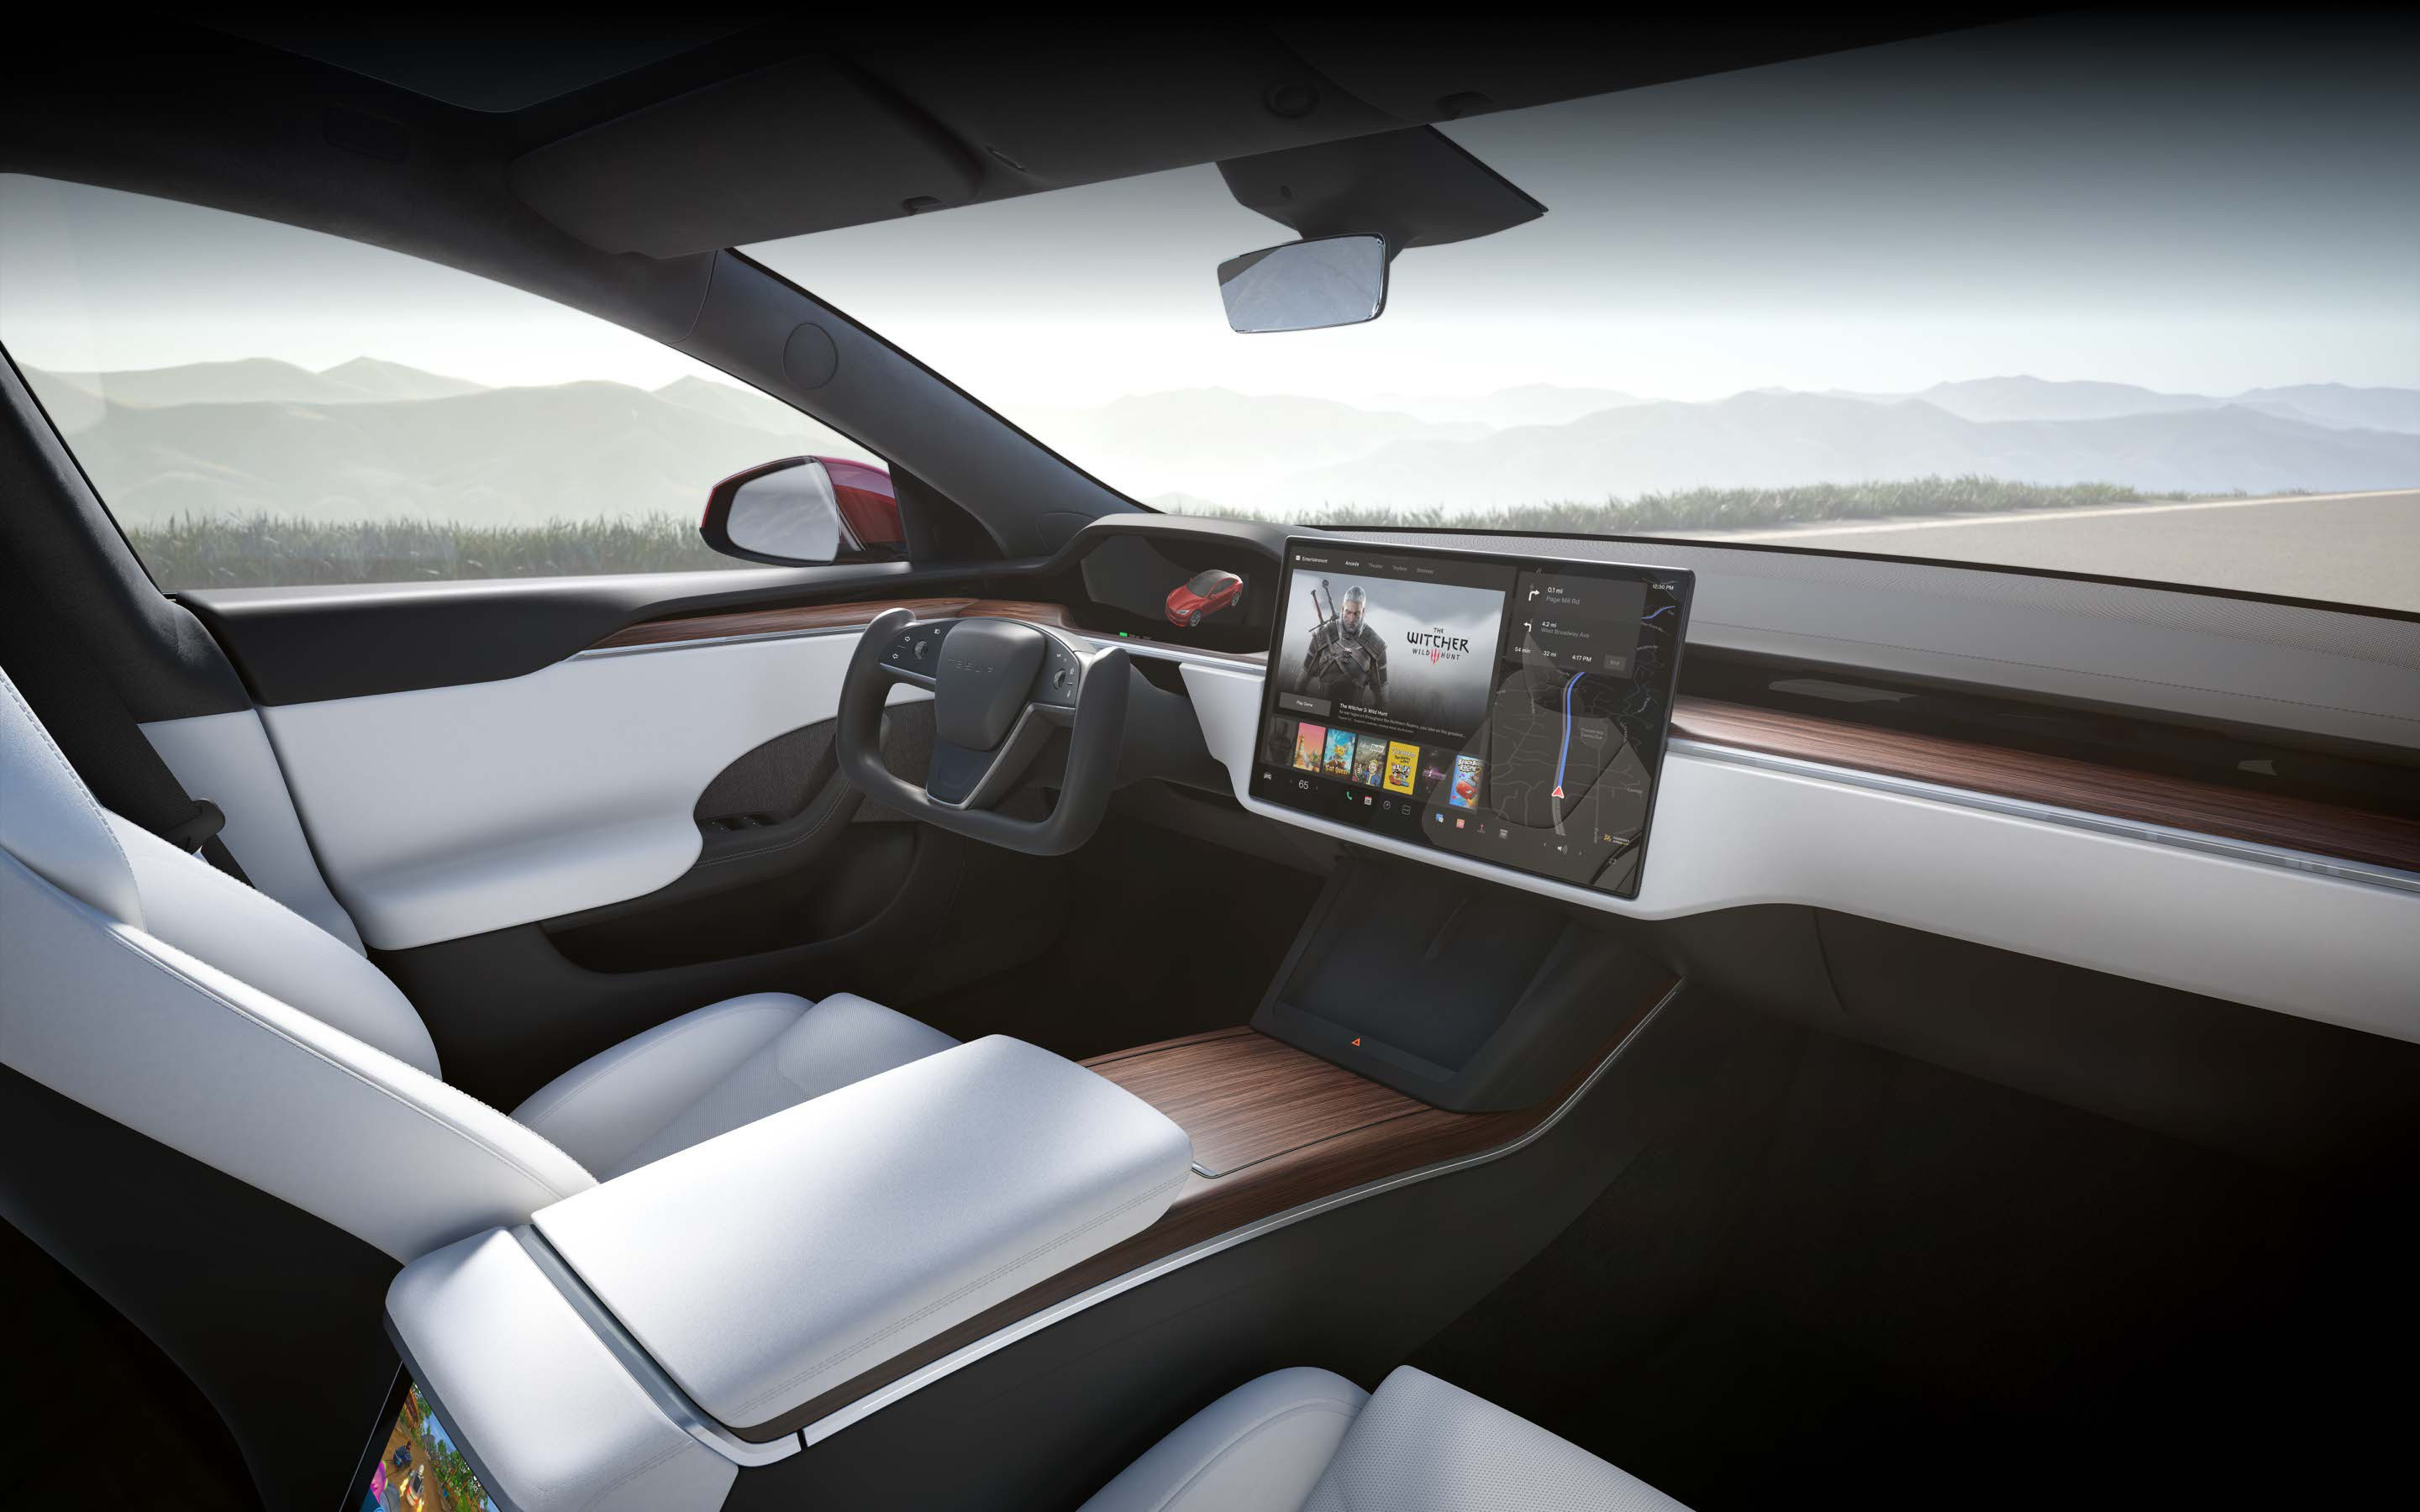 Interior Image of a Model S